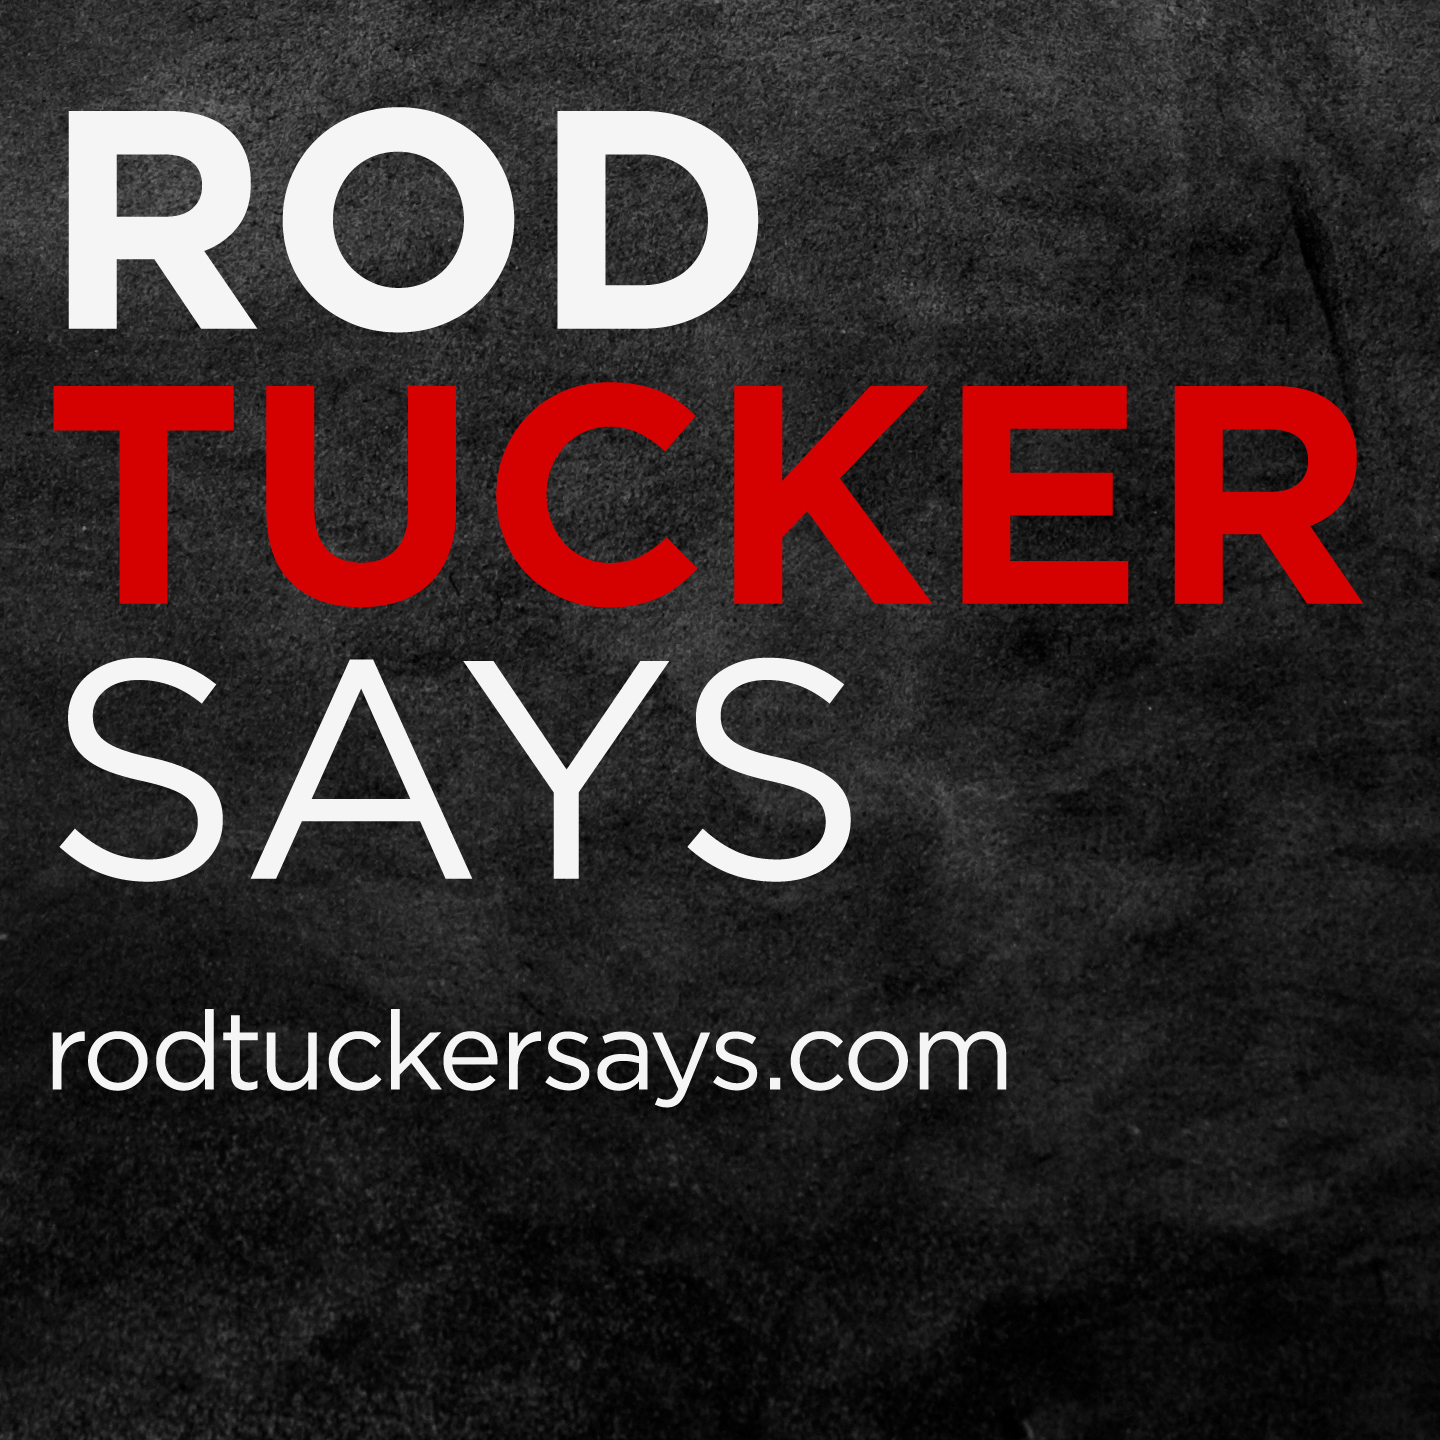 Rod Tucker Says